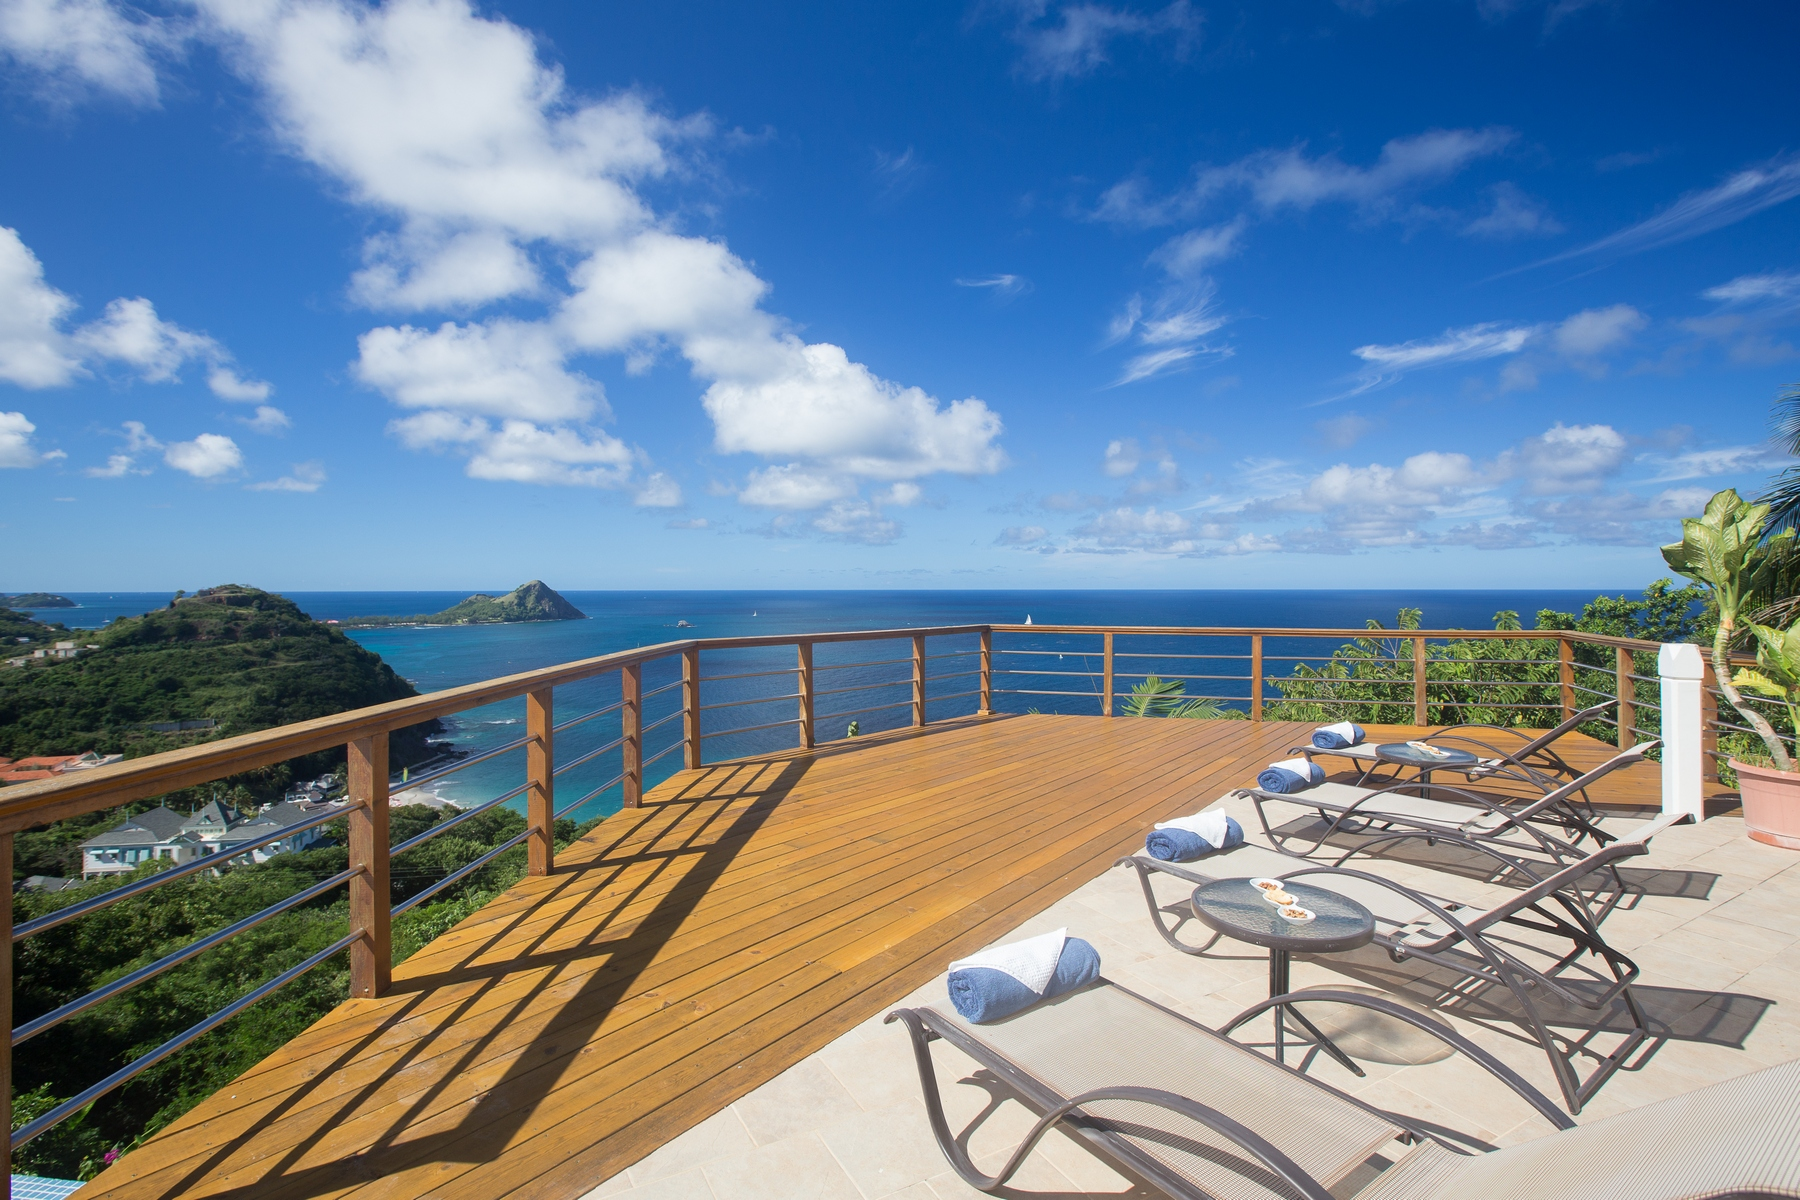 Single Family Home for Sale at Akasha Gros Islet, Gros-Islet, St. Lucia